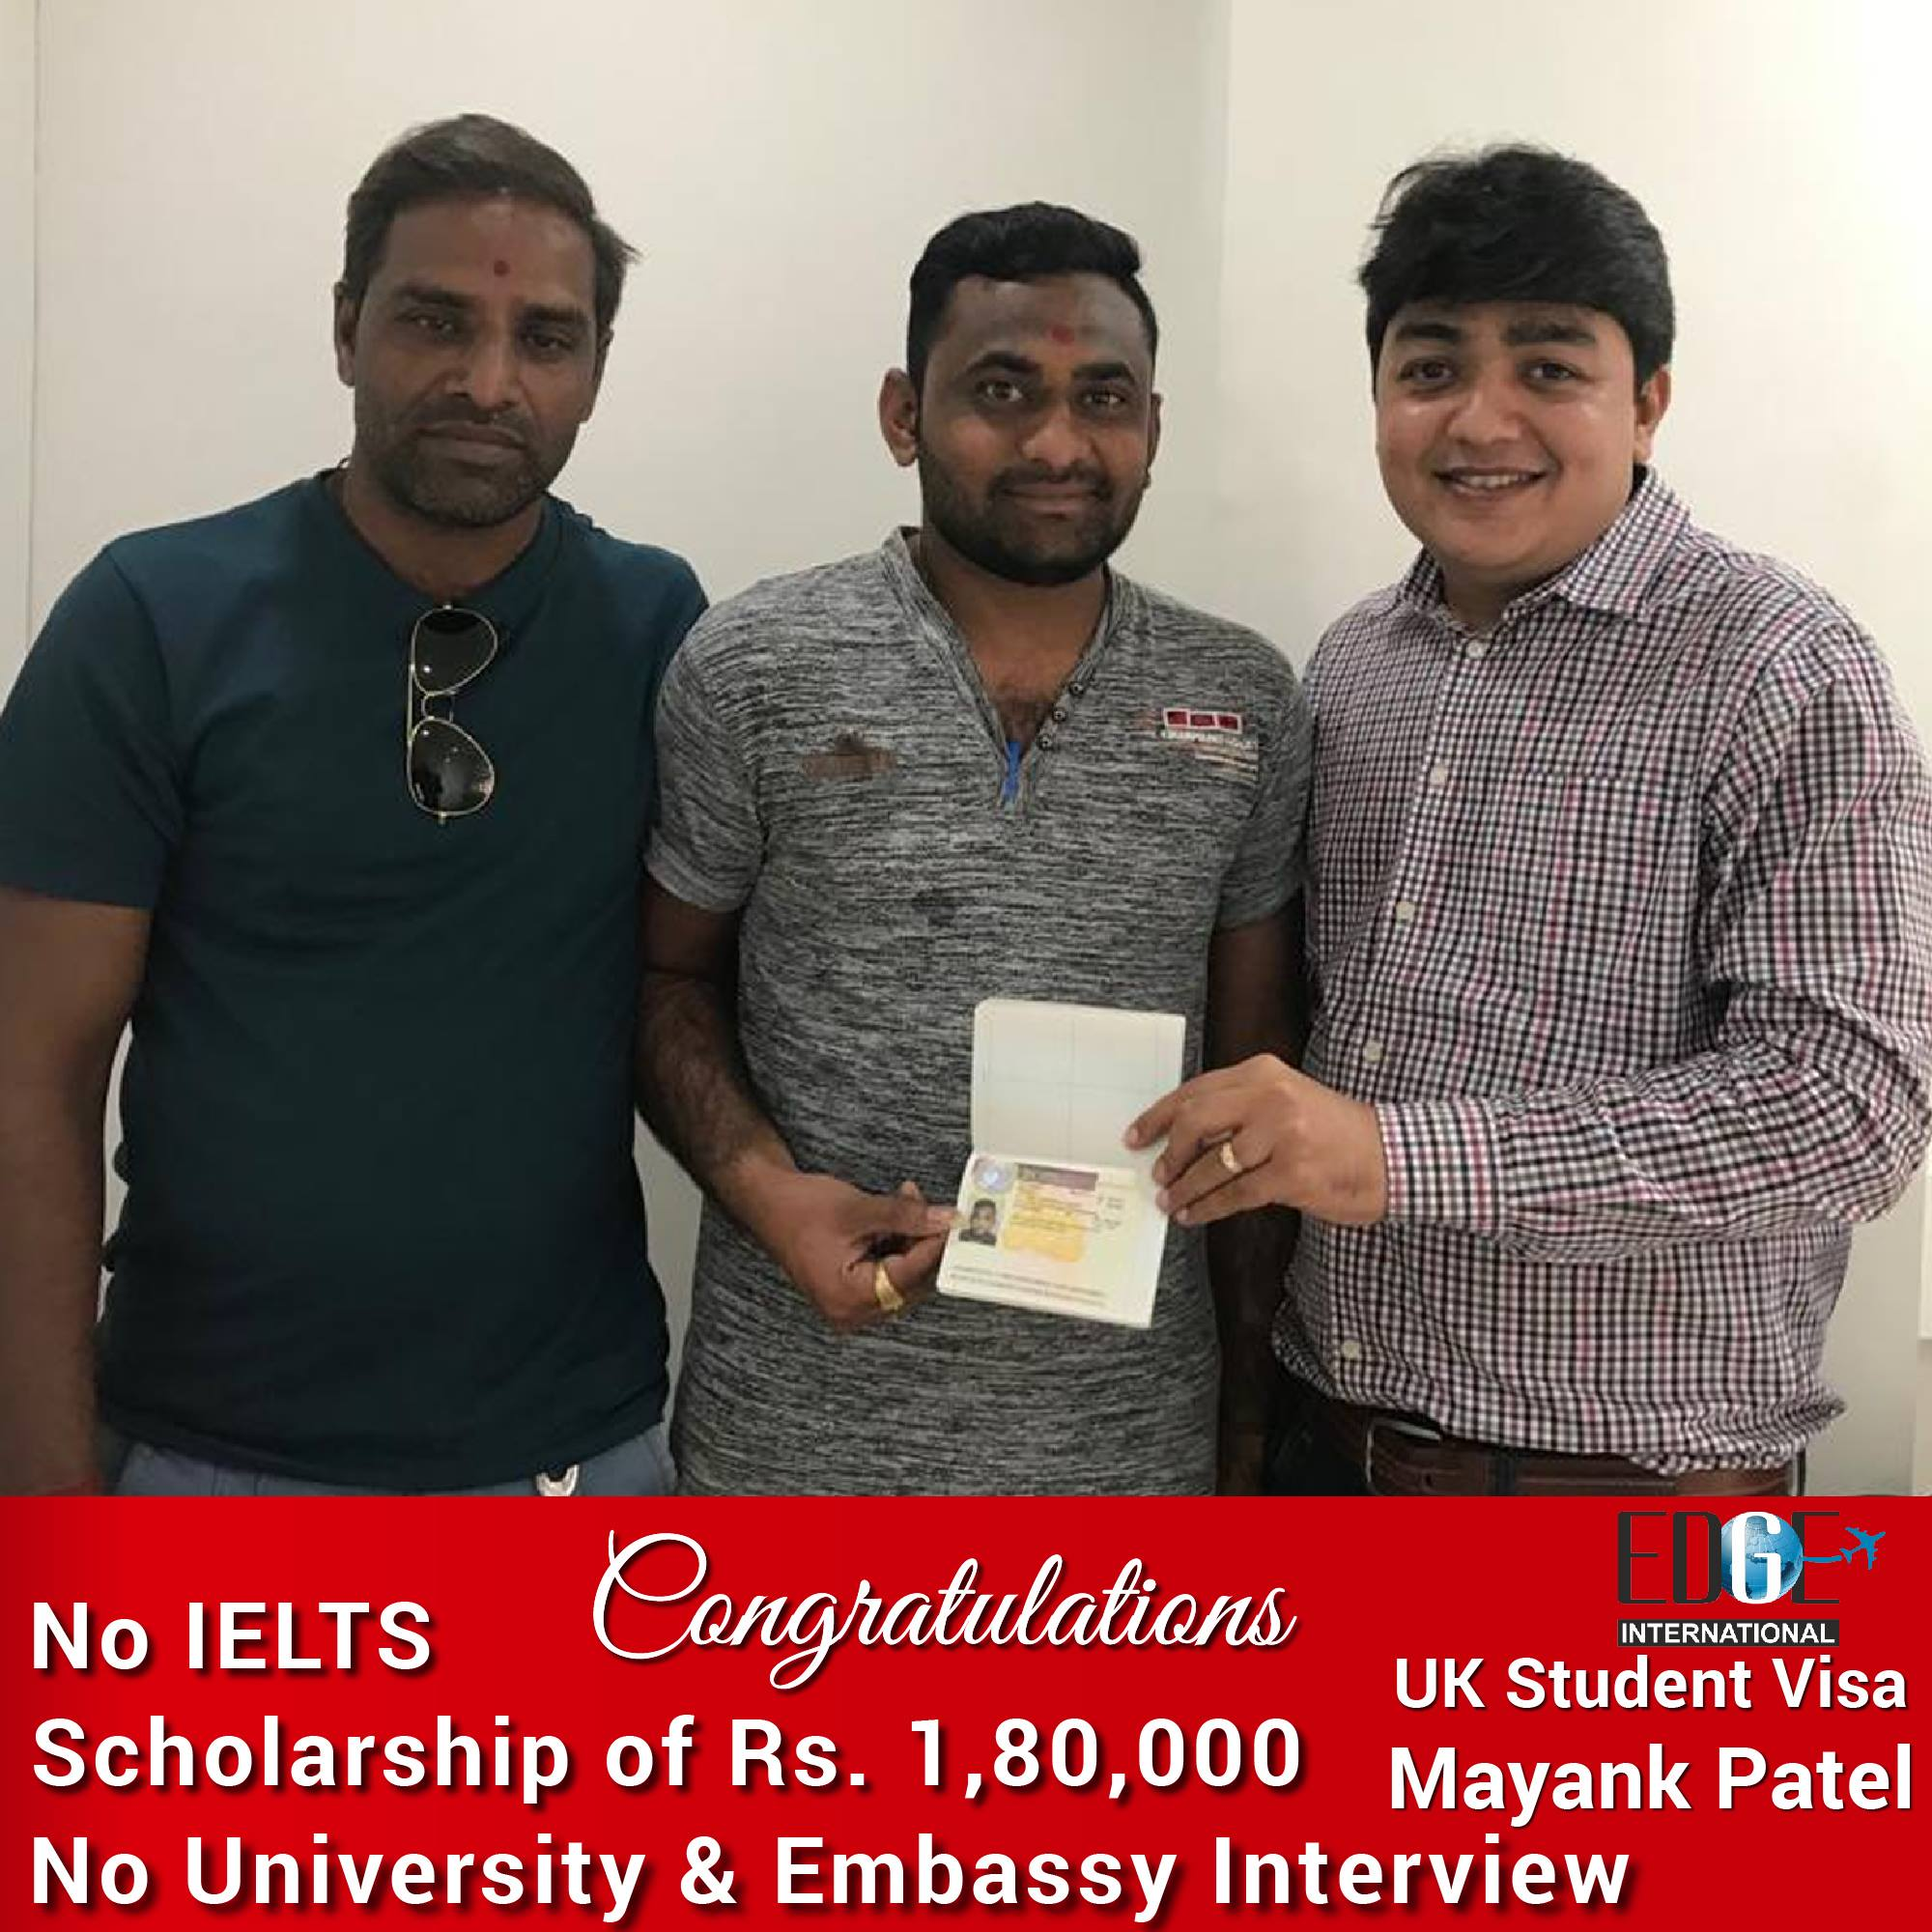 Many Congratulations to Mayank Patel for UK student